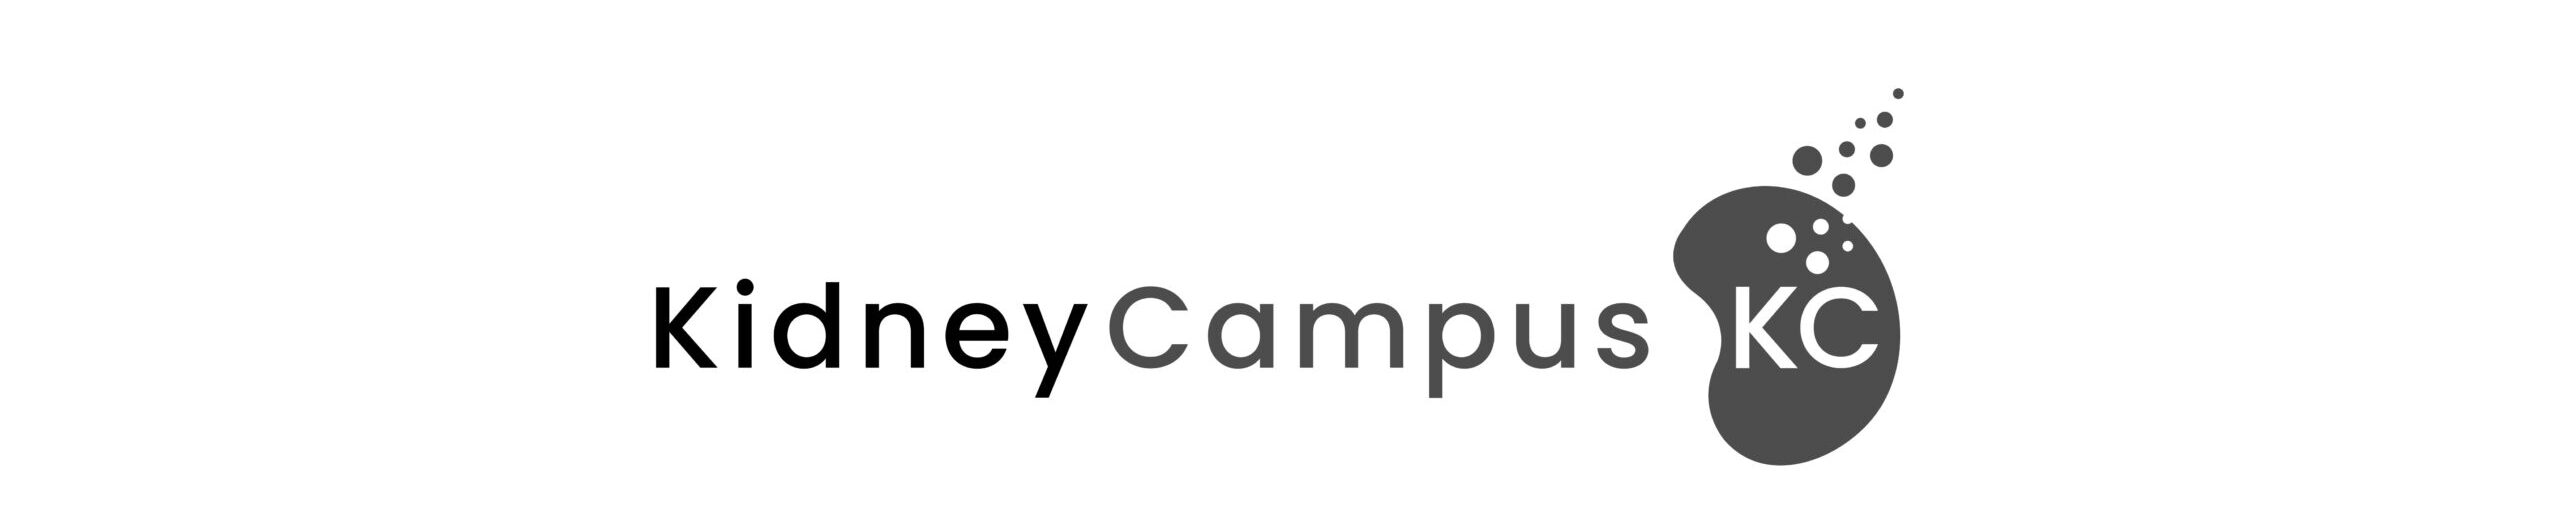 cropped-Kidney-Campus-Logo-A1-scaled-2.jpg